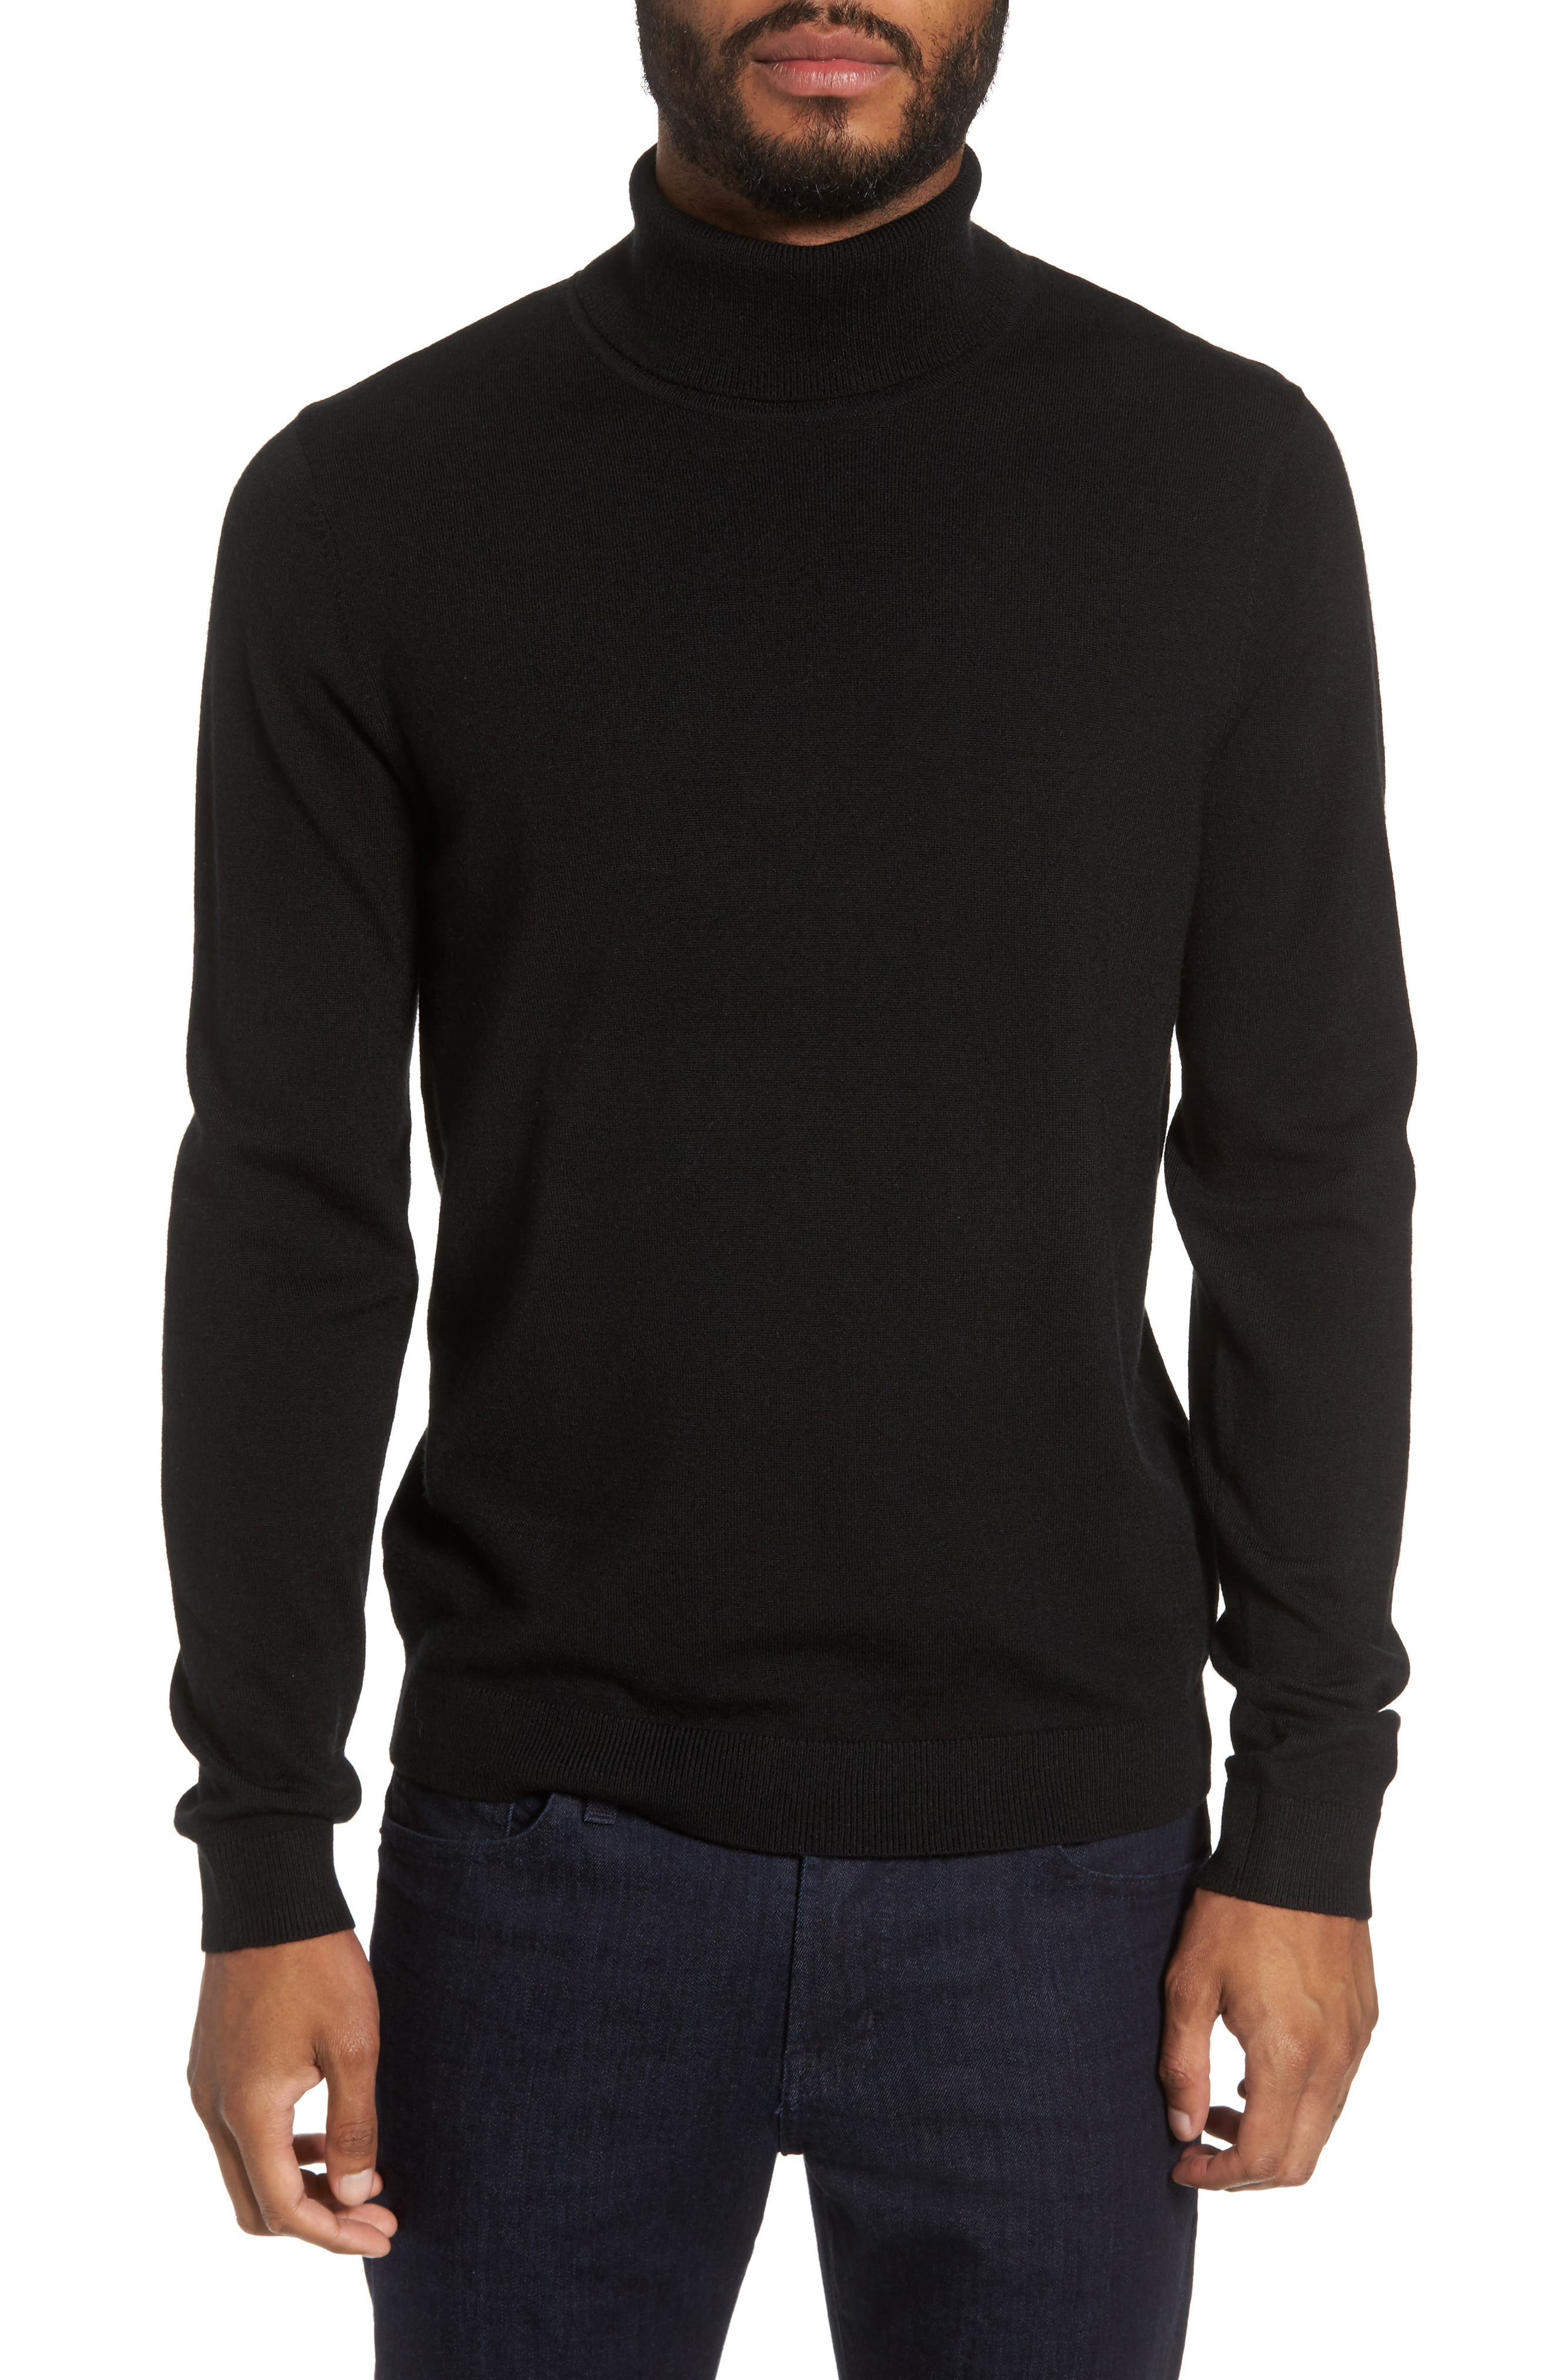 Calibrate Turtleneck Sweater